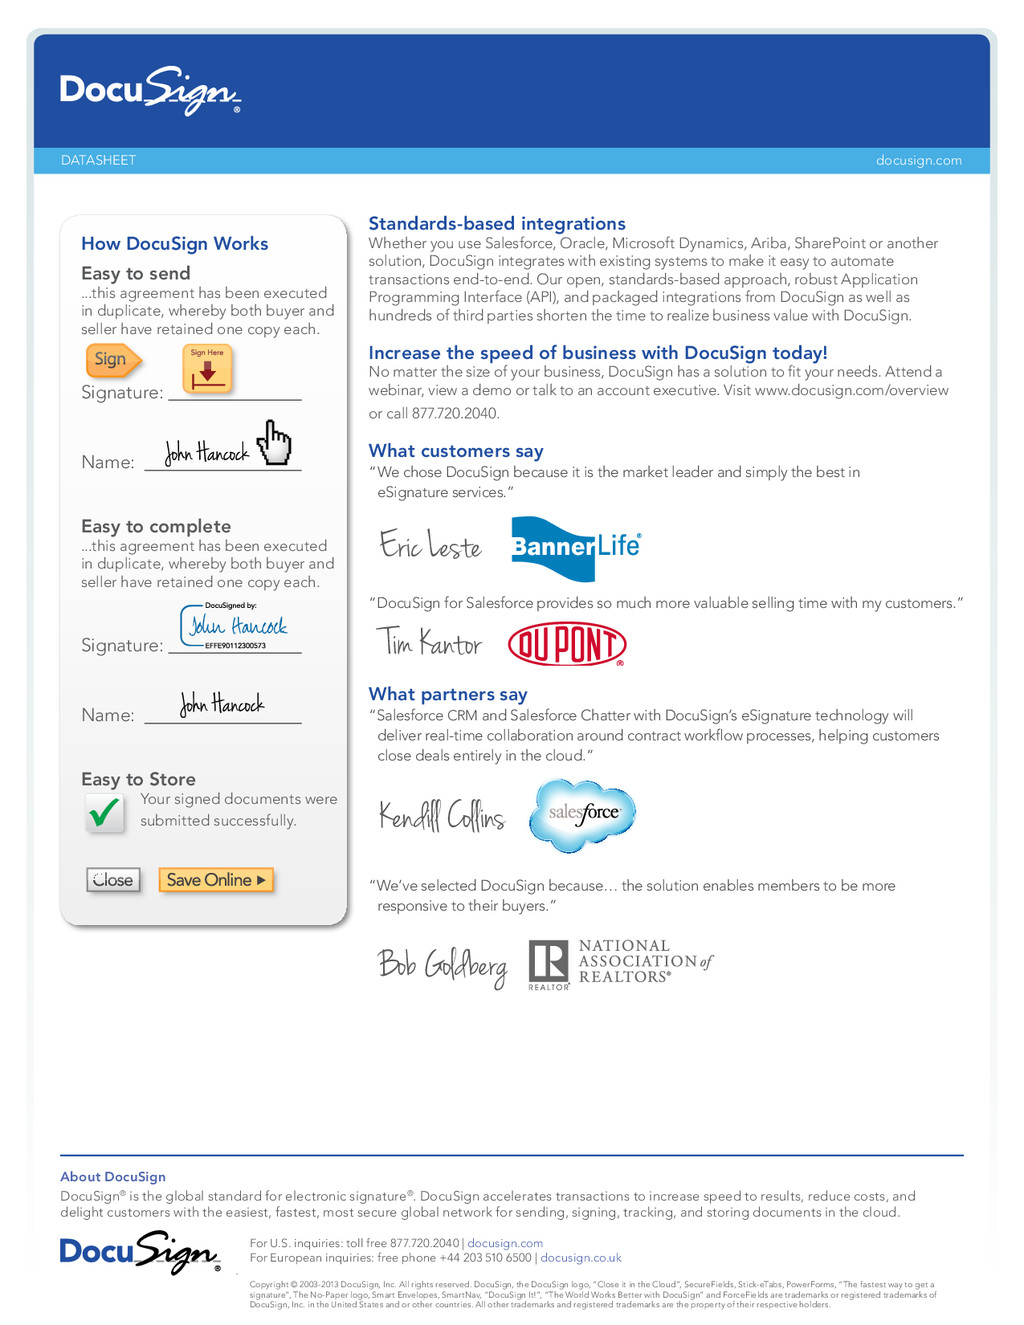 docusign.com About DocuSign DocuSign® is the gl...